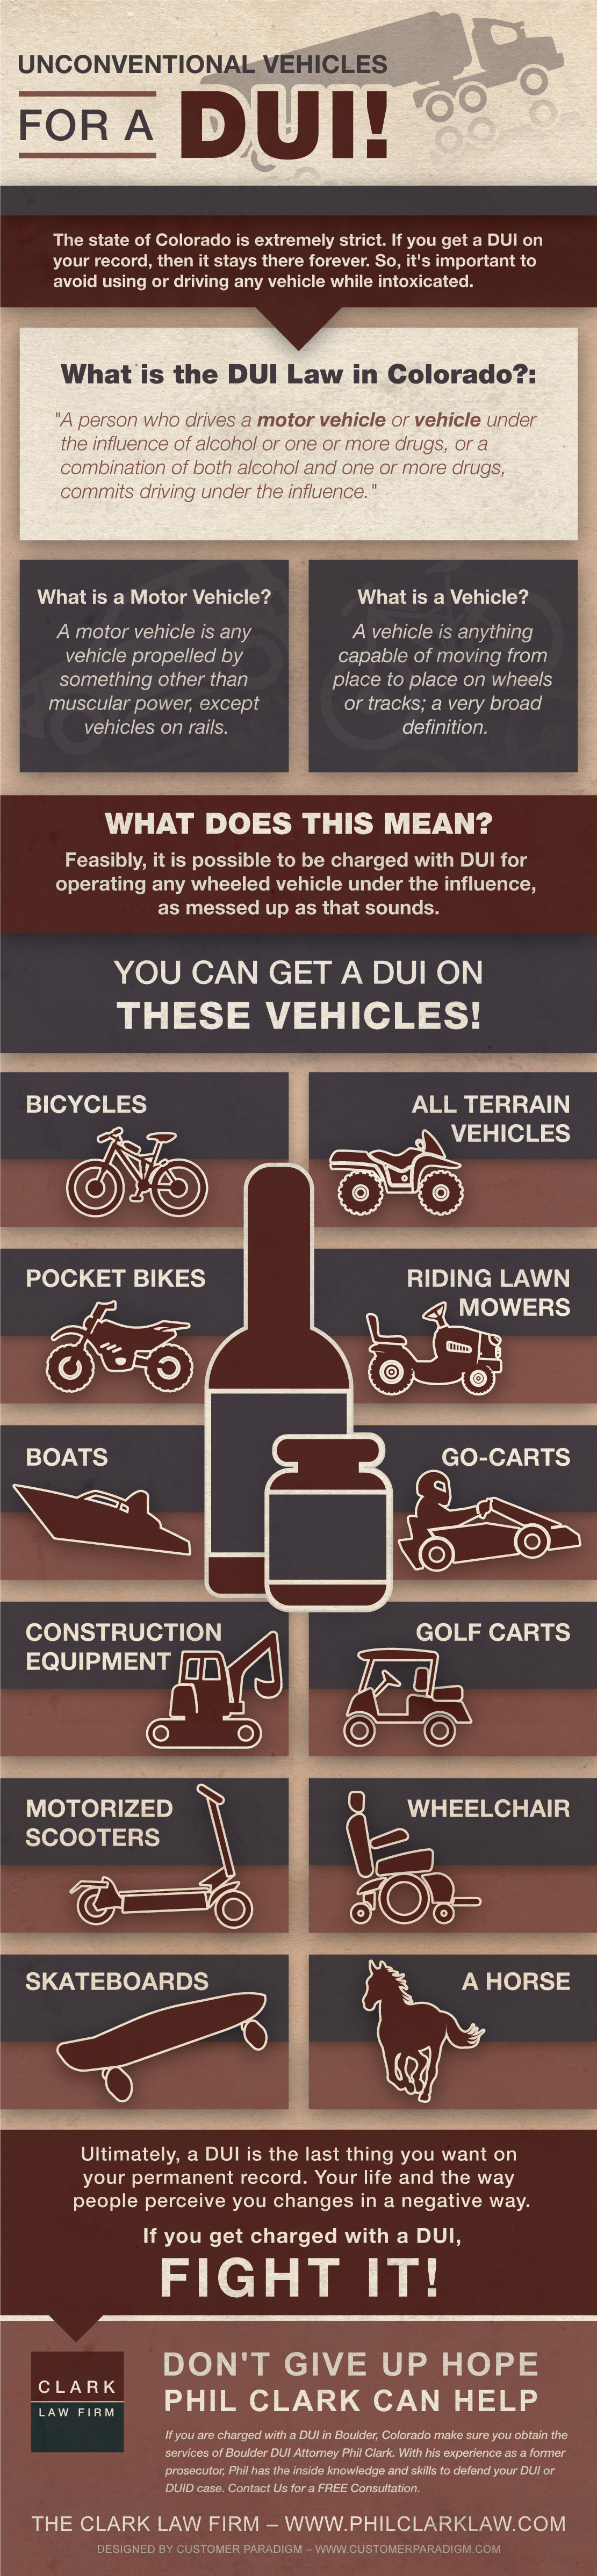 An infographic from Customer Paradigm about Unconventional Vehicles that still qualify for a DUI